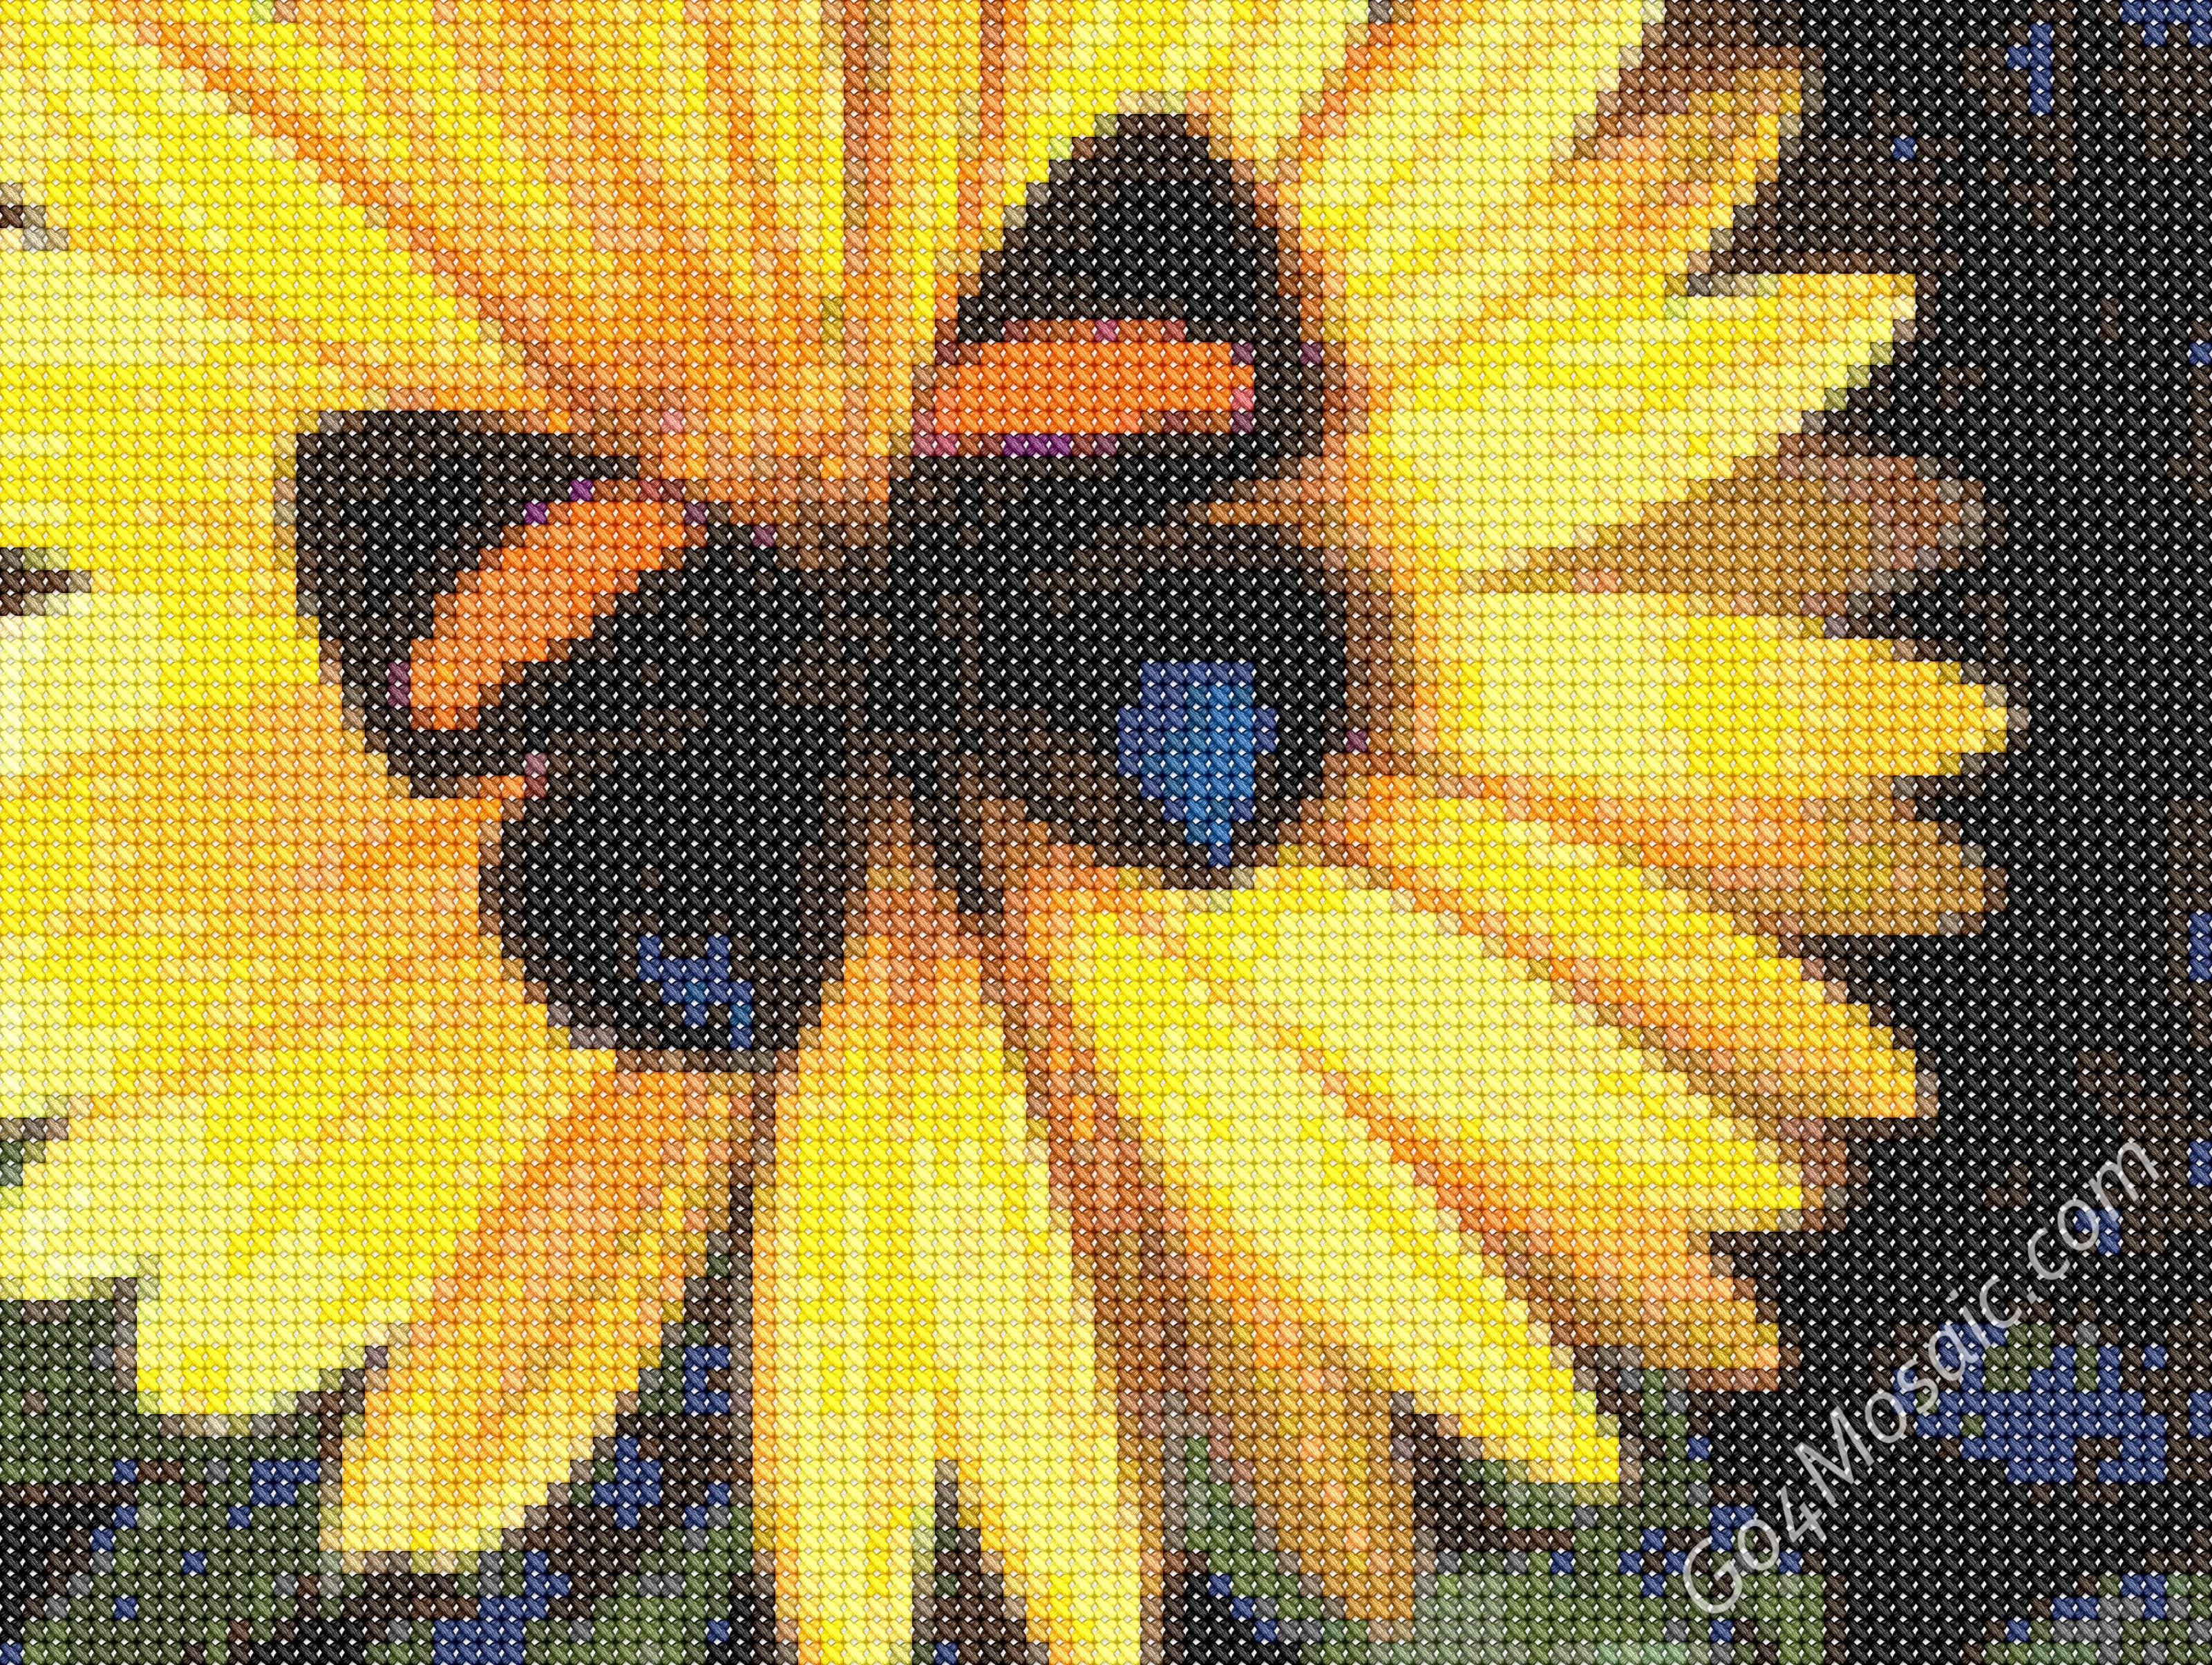 Butterfly mosaic from cross-stitched